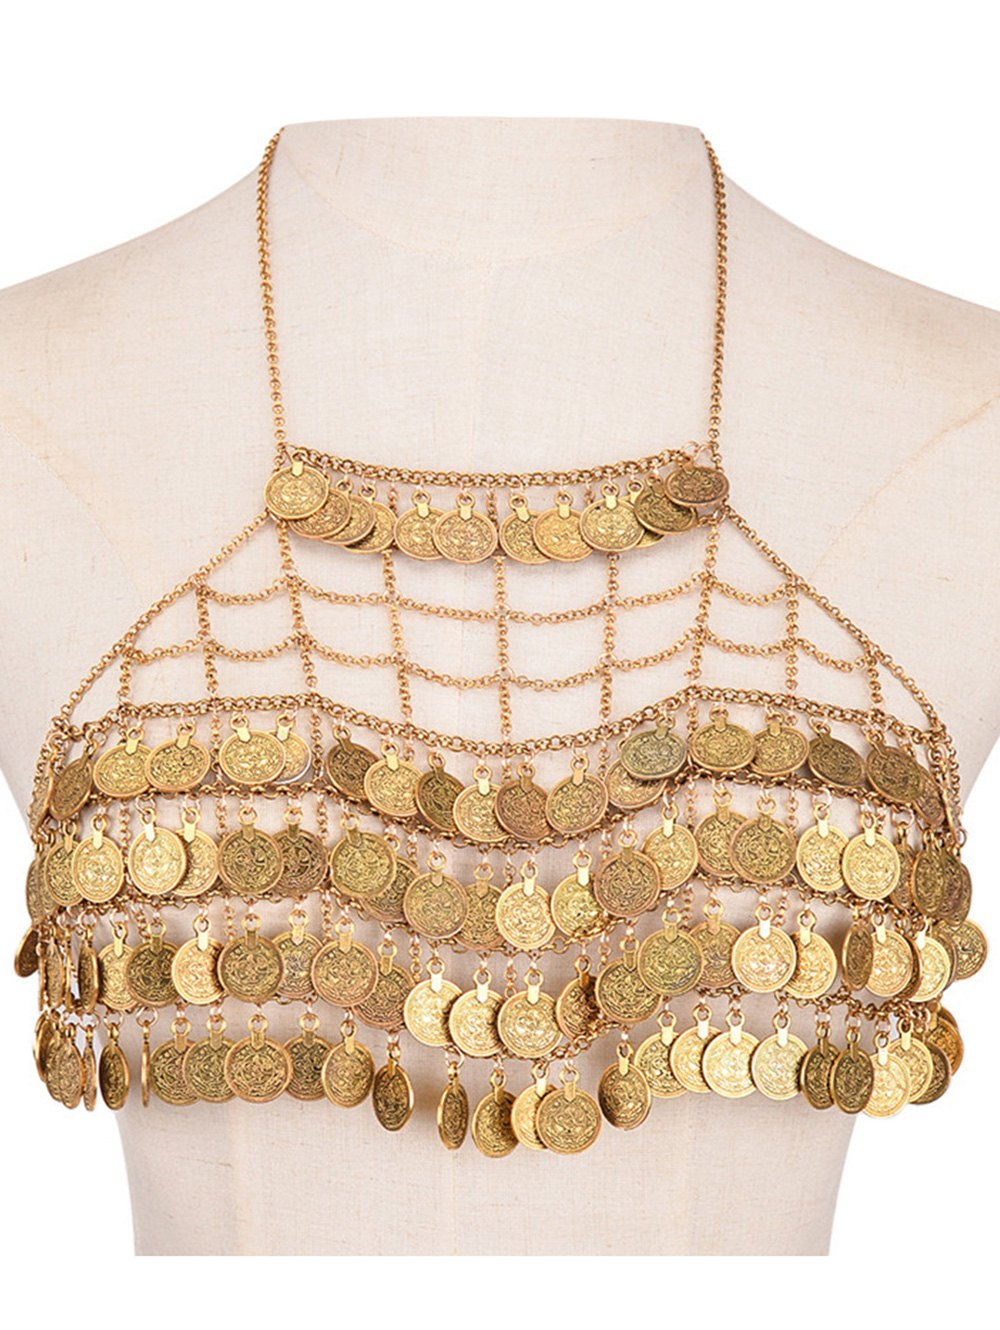 Tiered Gridding Engraved Coins Body Chain